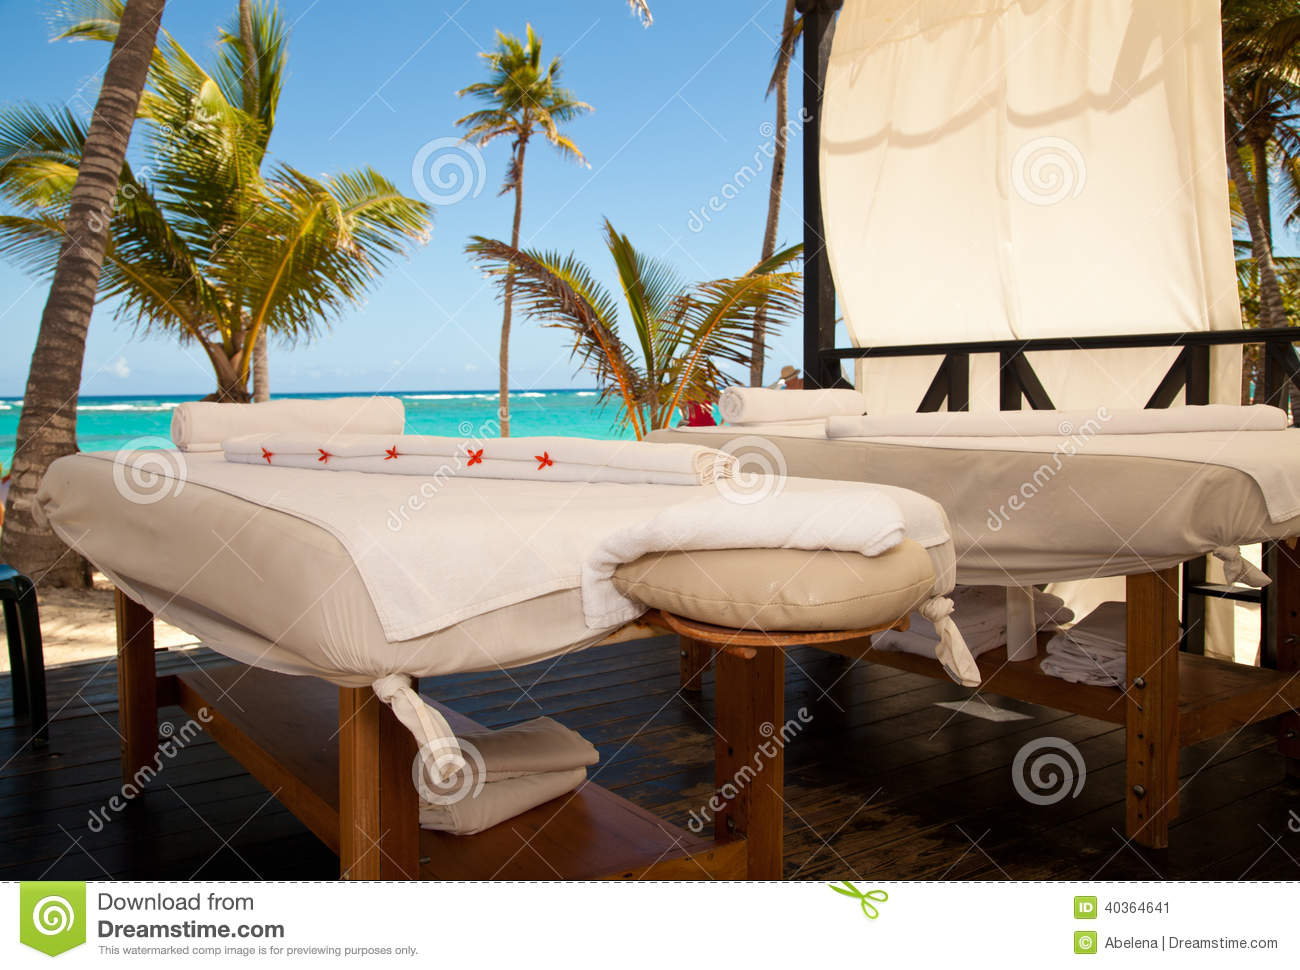 Massage Tables In Tropical Beach Stock Photo